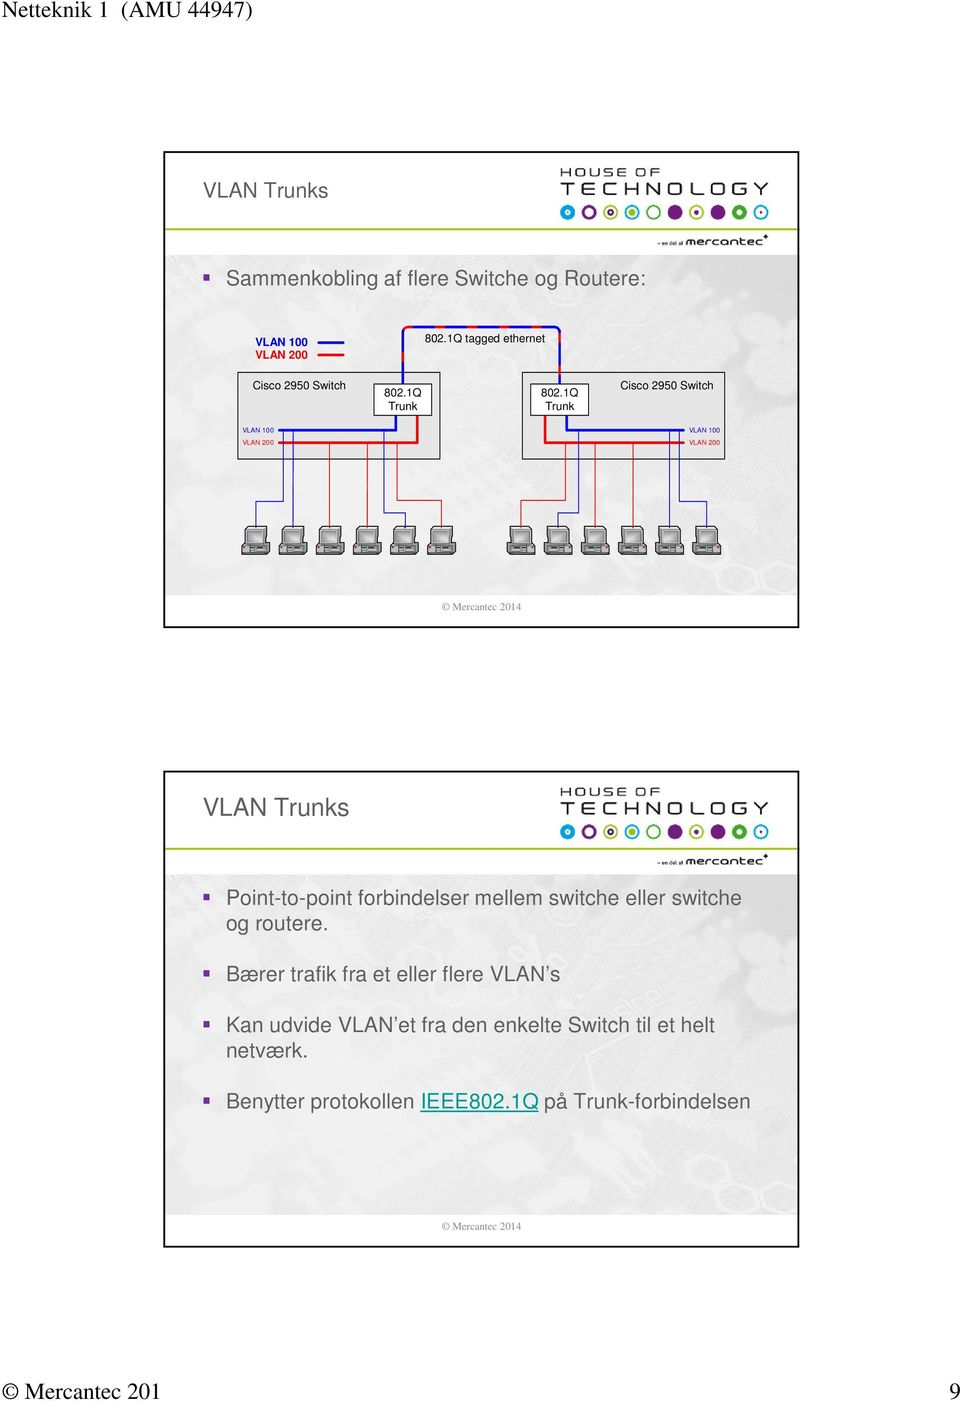 1Q runk Cisco 2950 witch VLAN runks Point-to-point forbindelser mellem switche eller switche og